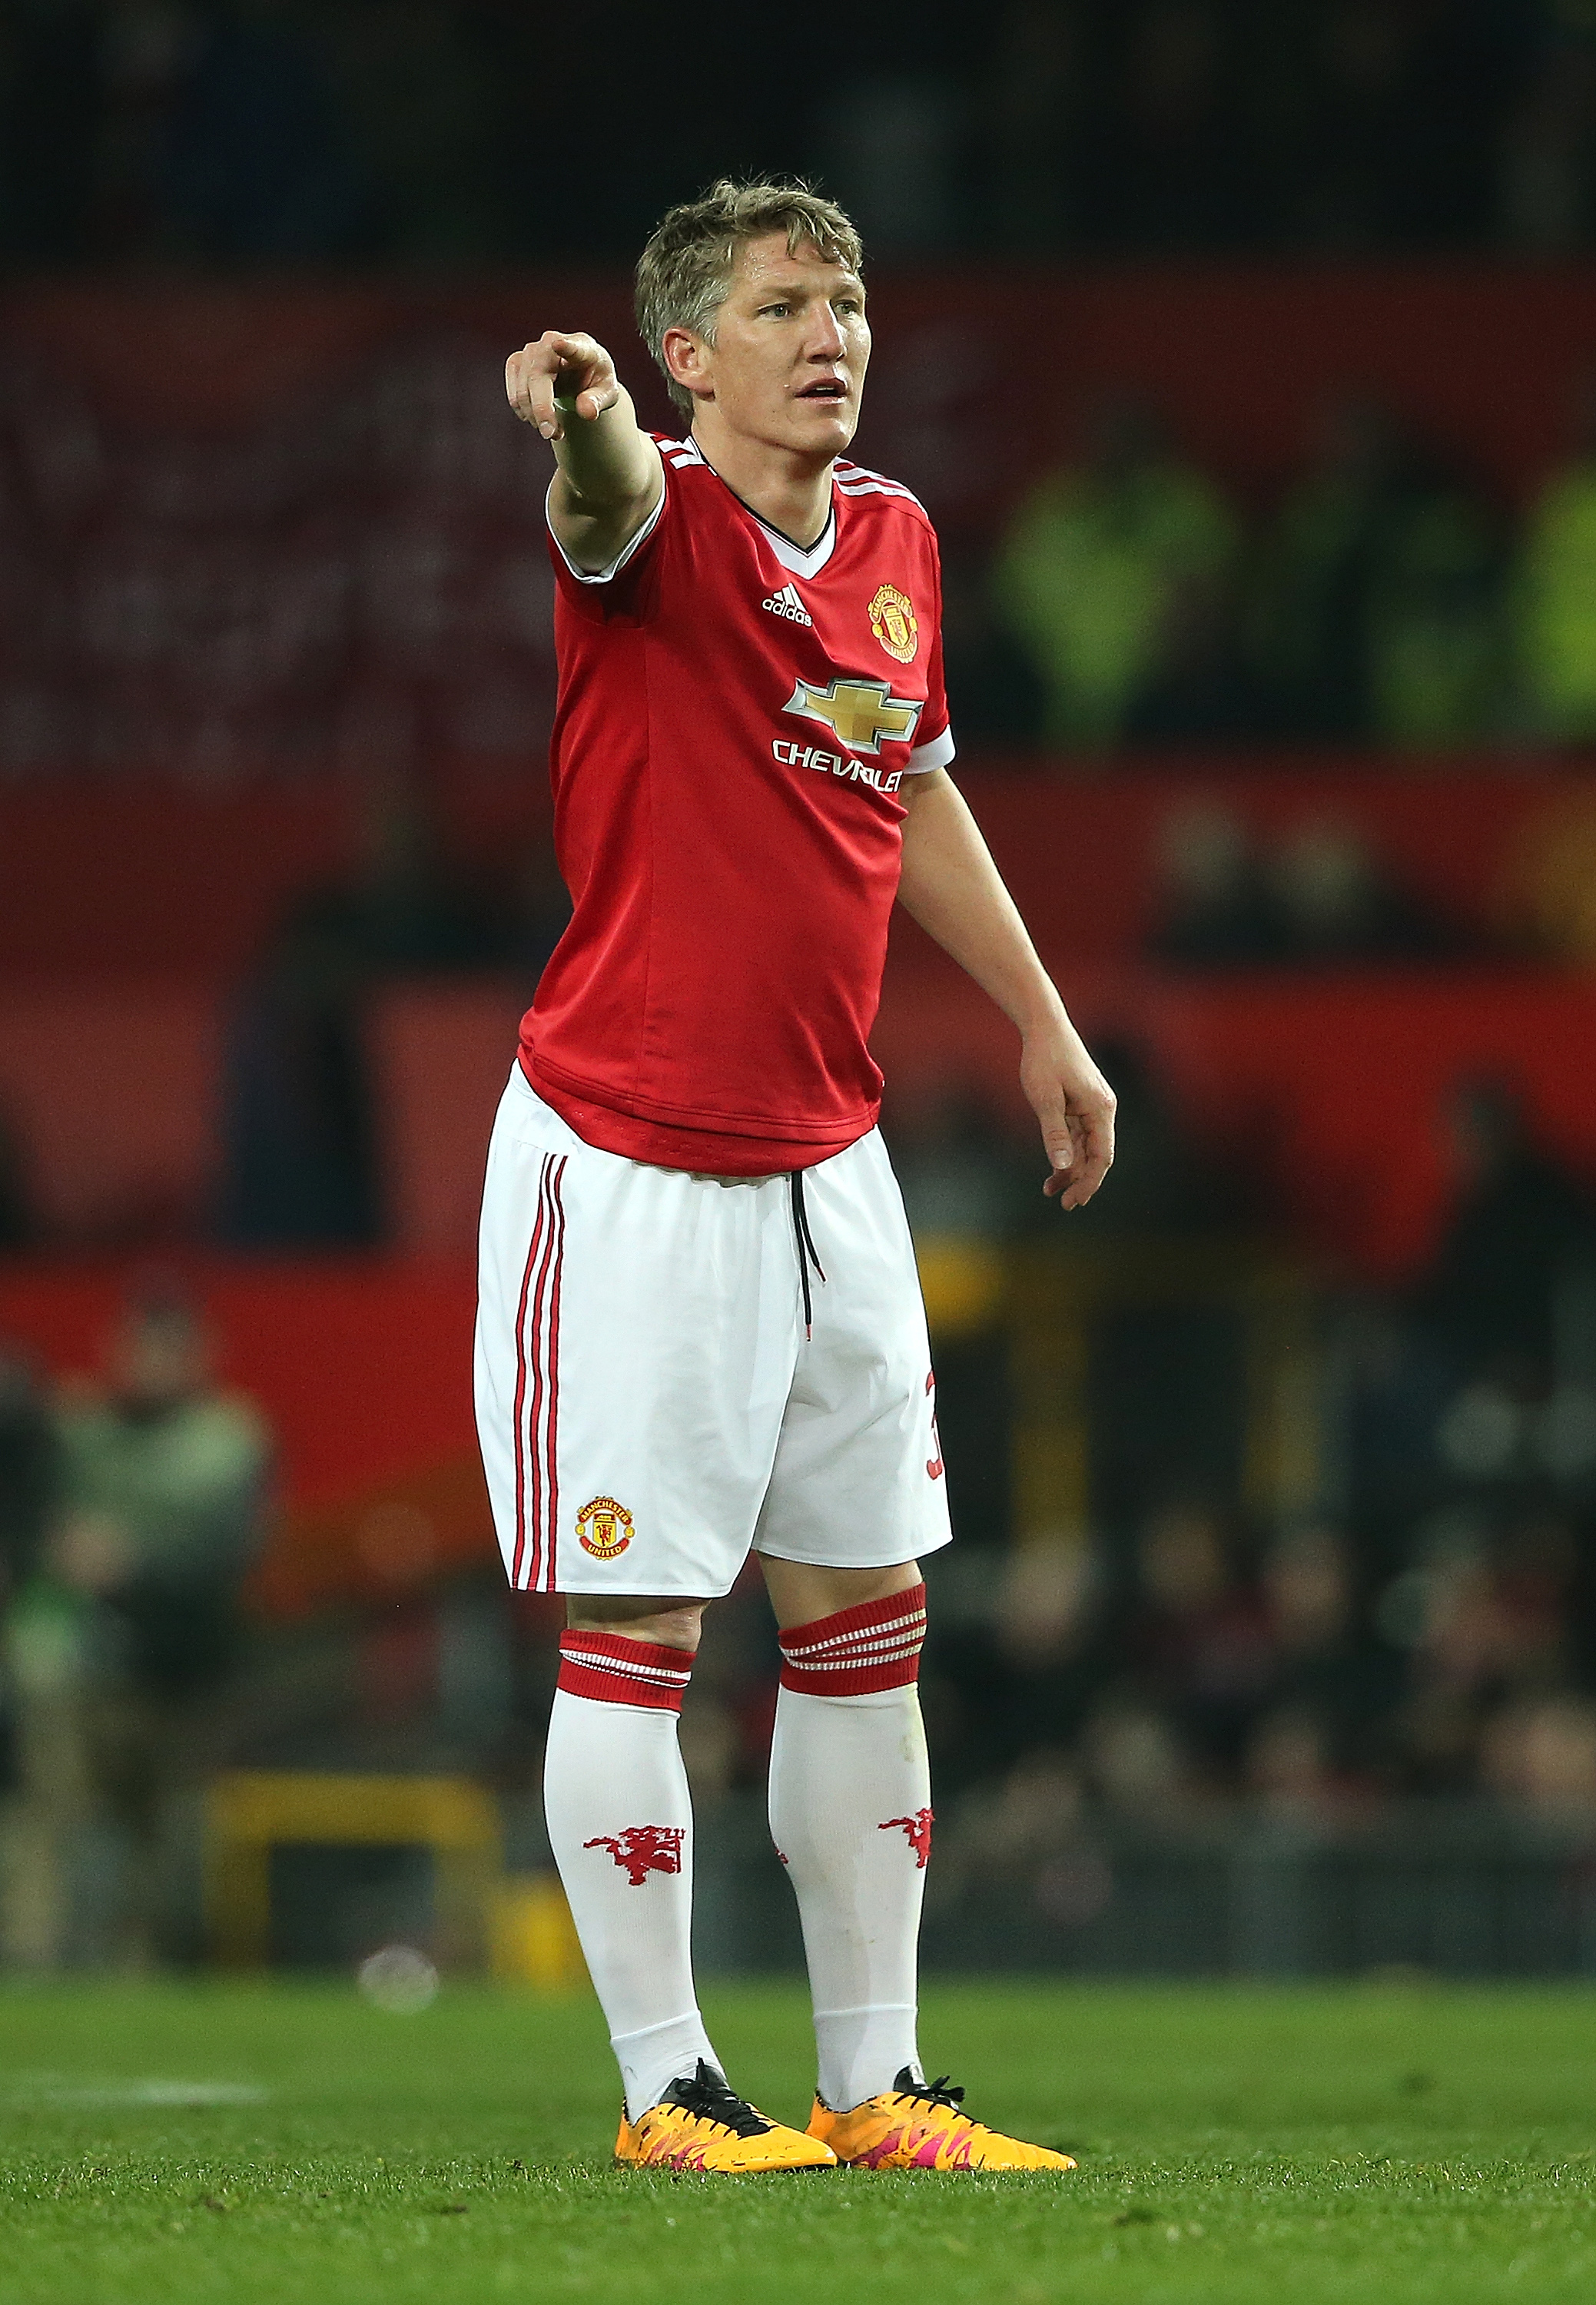 Does Schweinsteiger have a Future at United